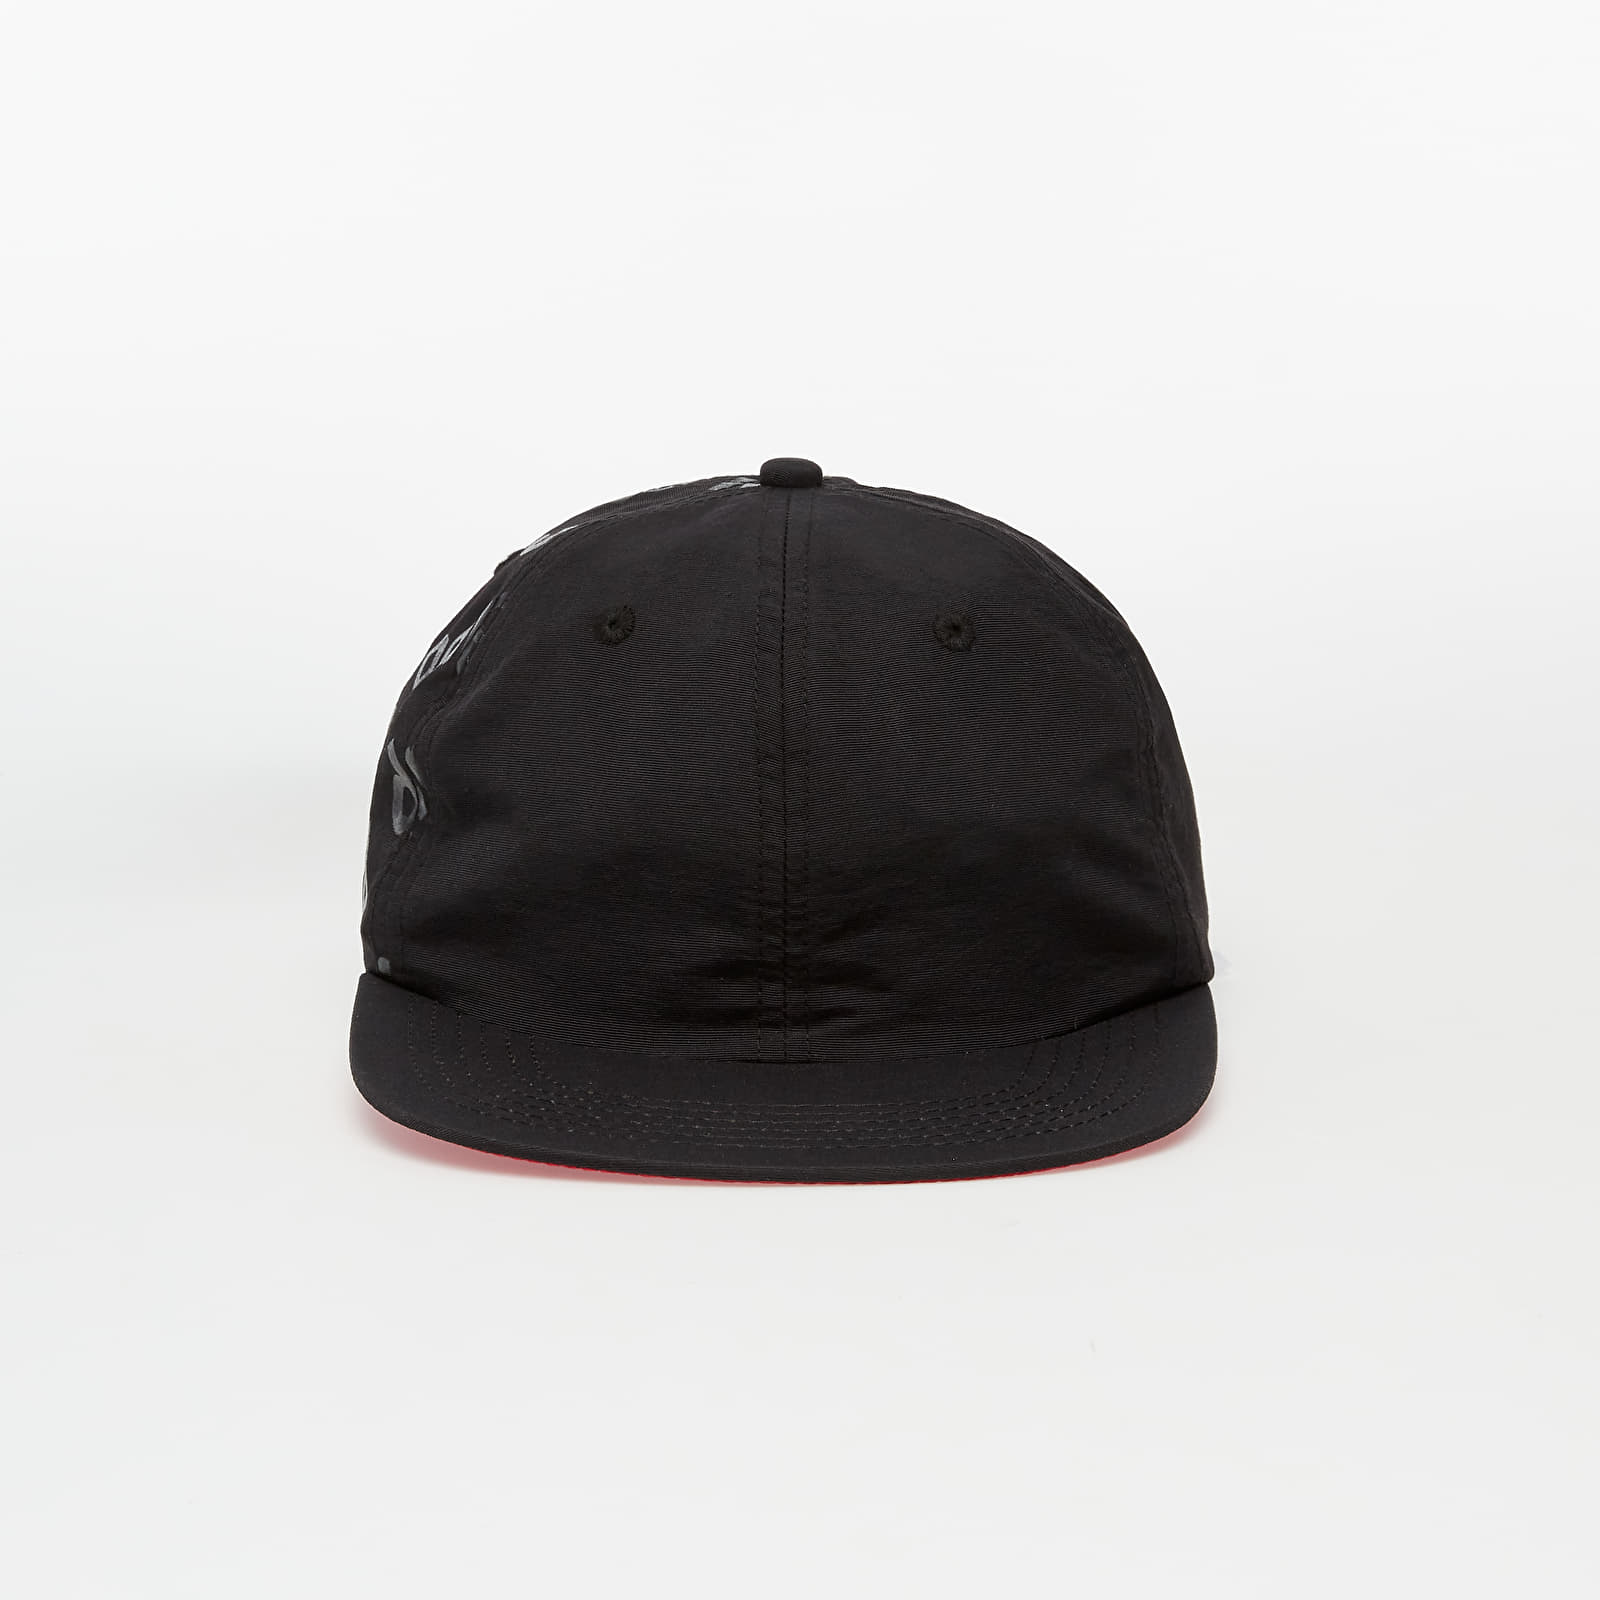 Șepci RAP Cap Black